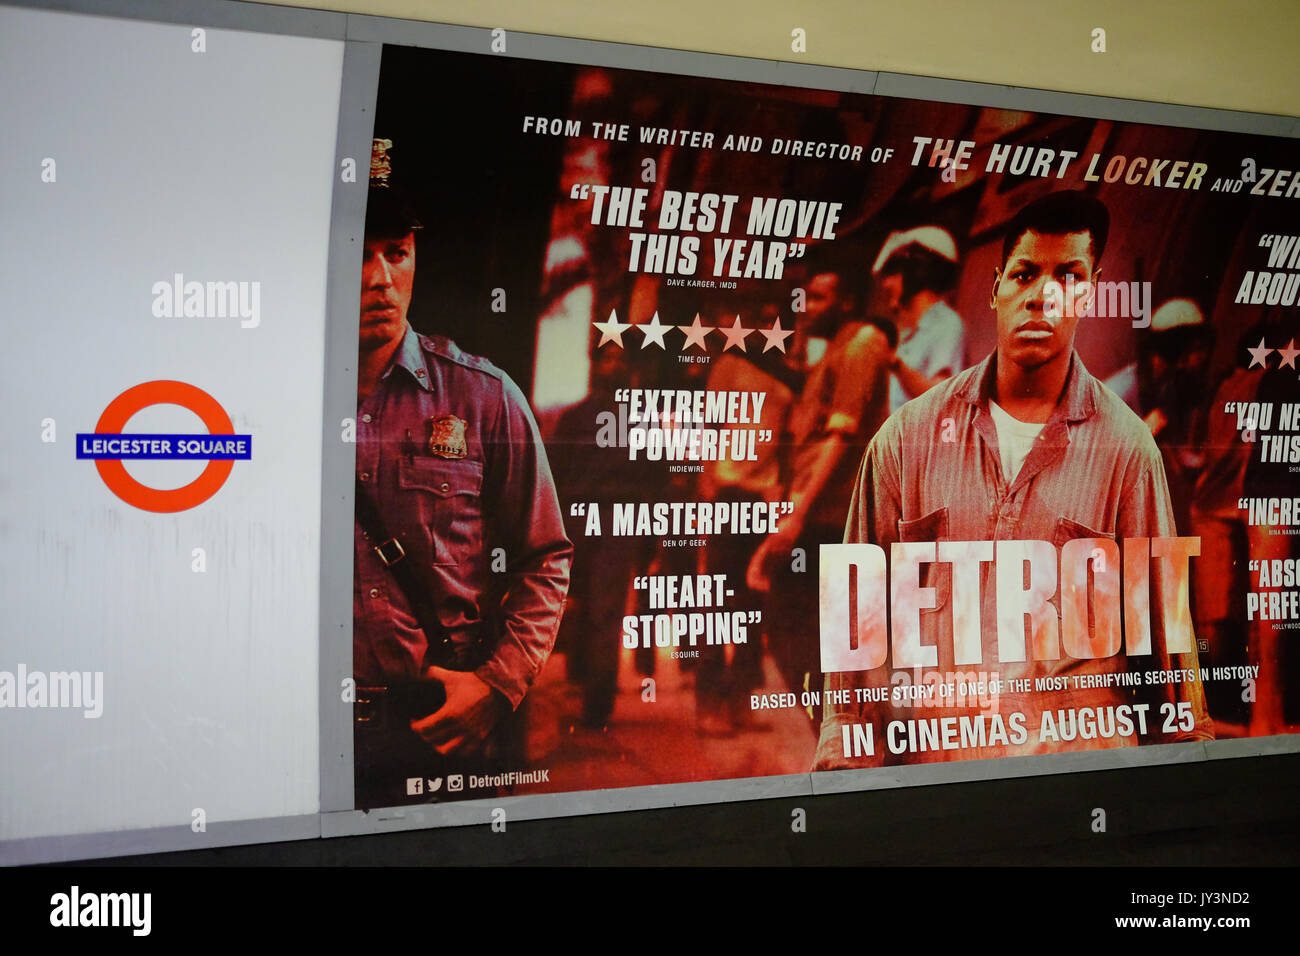 A movie poster for the film Detroit on the platform of Leicester Square underground station in the West End of London - Stock Image